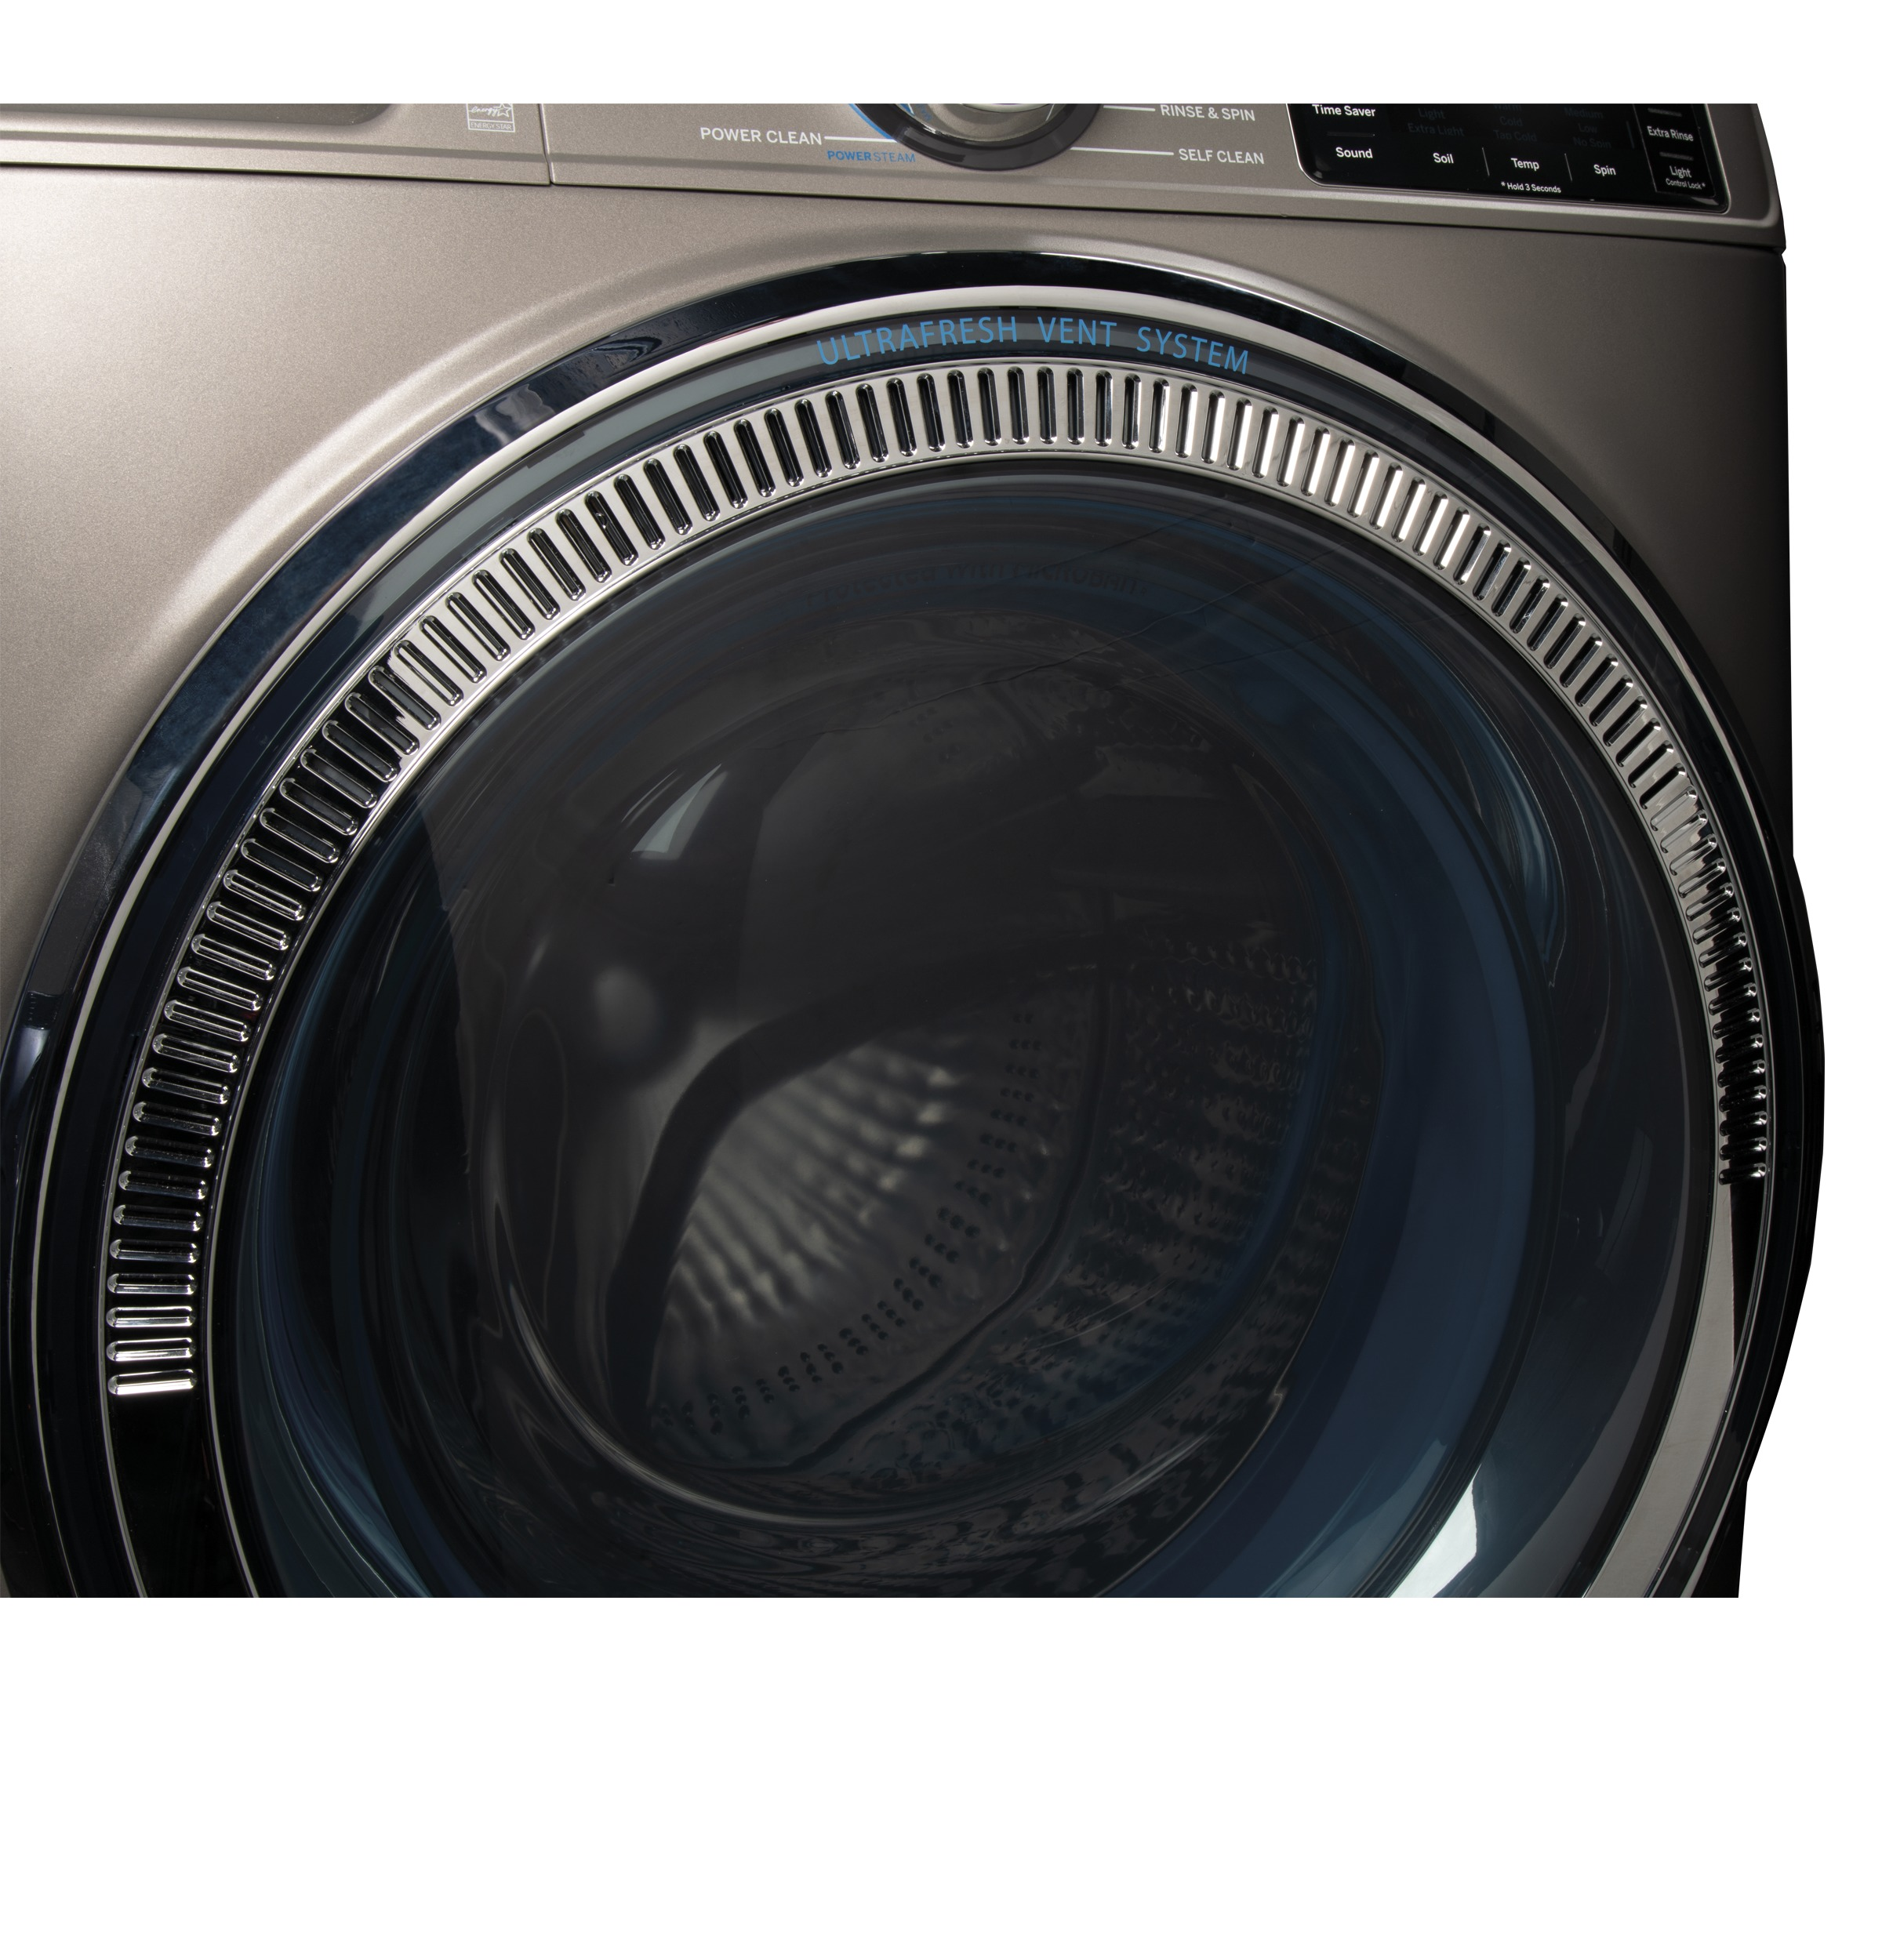 Model: GFW650SPNSN | GE GE® 4.8 cu. ft. Capacity Smart Front Load ENERGY STAR® Steam Washer with SmartDispense™ UltraFresh Vent System with OdorBlock™ and Sanitize + Allergen